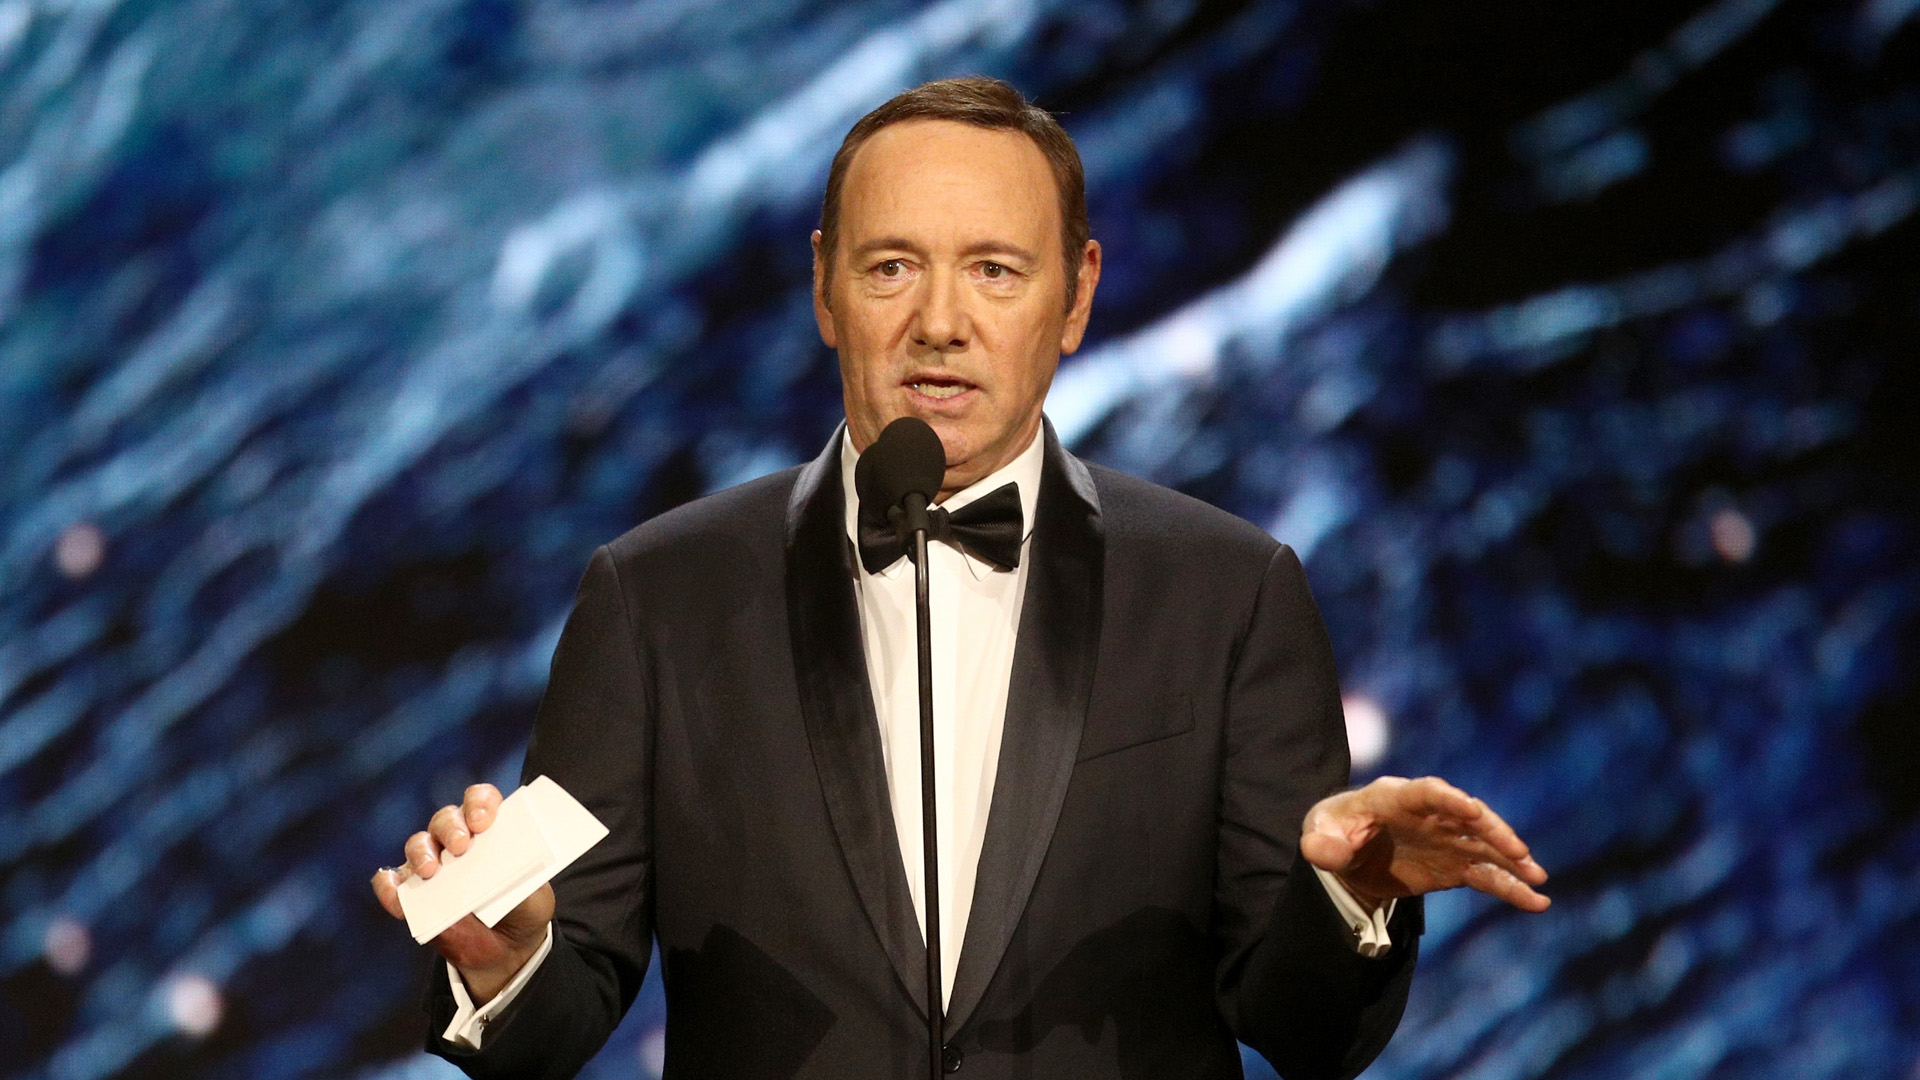 Kevin Spacey onstage to present Britannia Award for Excellence in Television at the 2017 AMD British Academy Britannia Awards at The Beverly Hilton Hotel on Oct. 27, 2017, in Beverly Hills. (Credit: Frederick M. Brown/Getty Images)